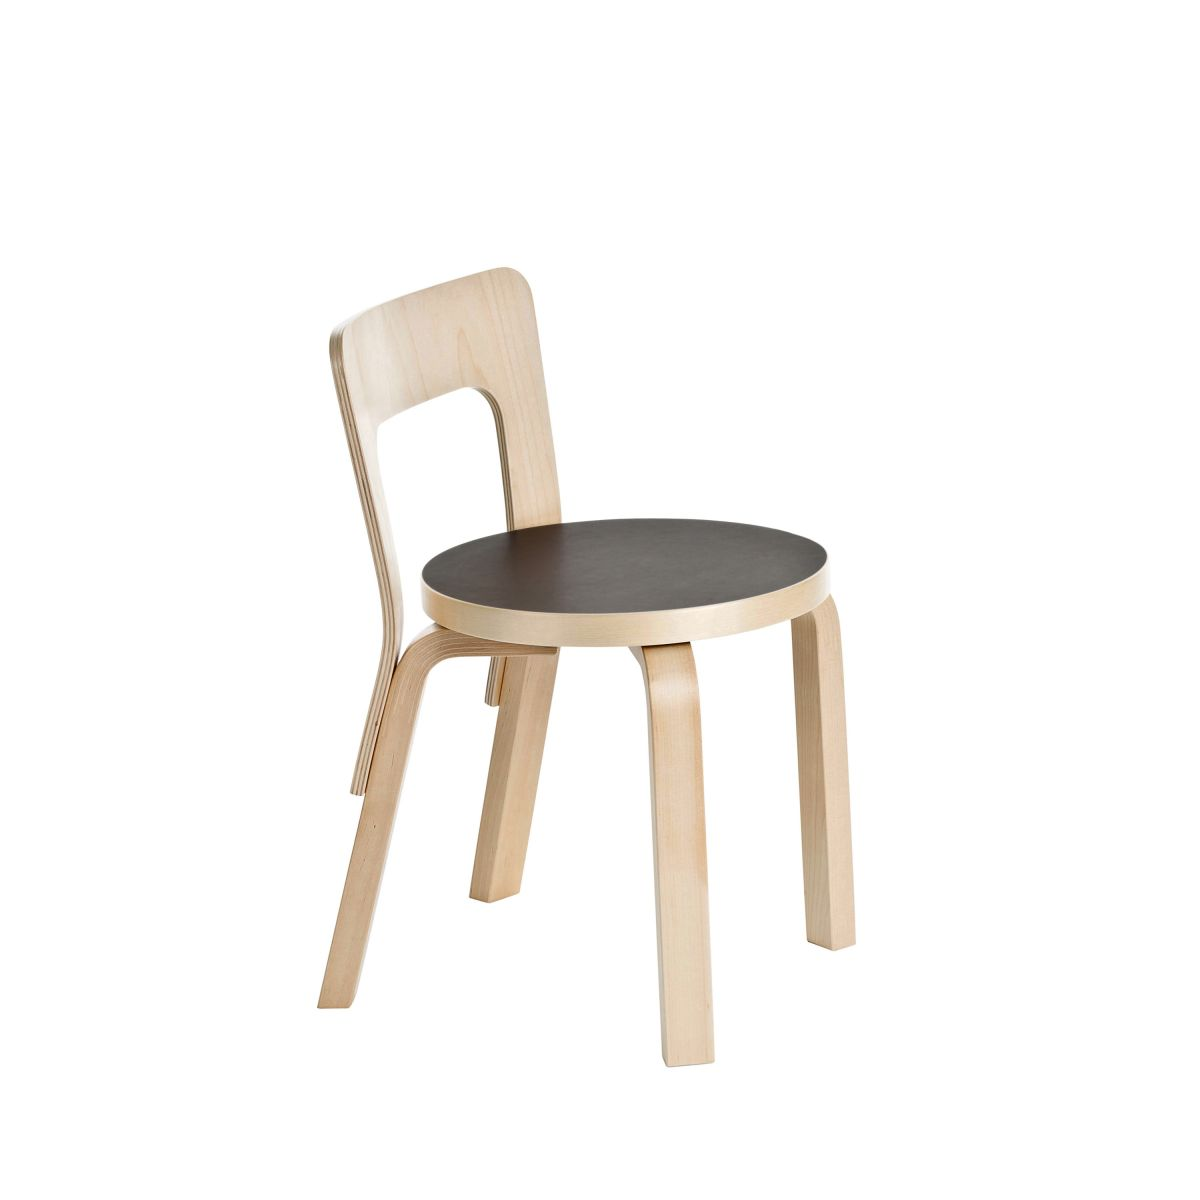 Childrens Chair N65 Legs Birch Seat Black Linoleum 2463533